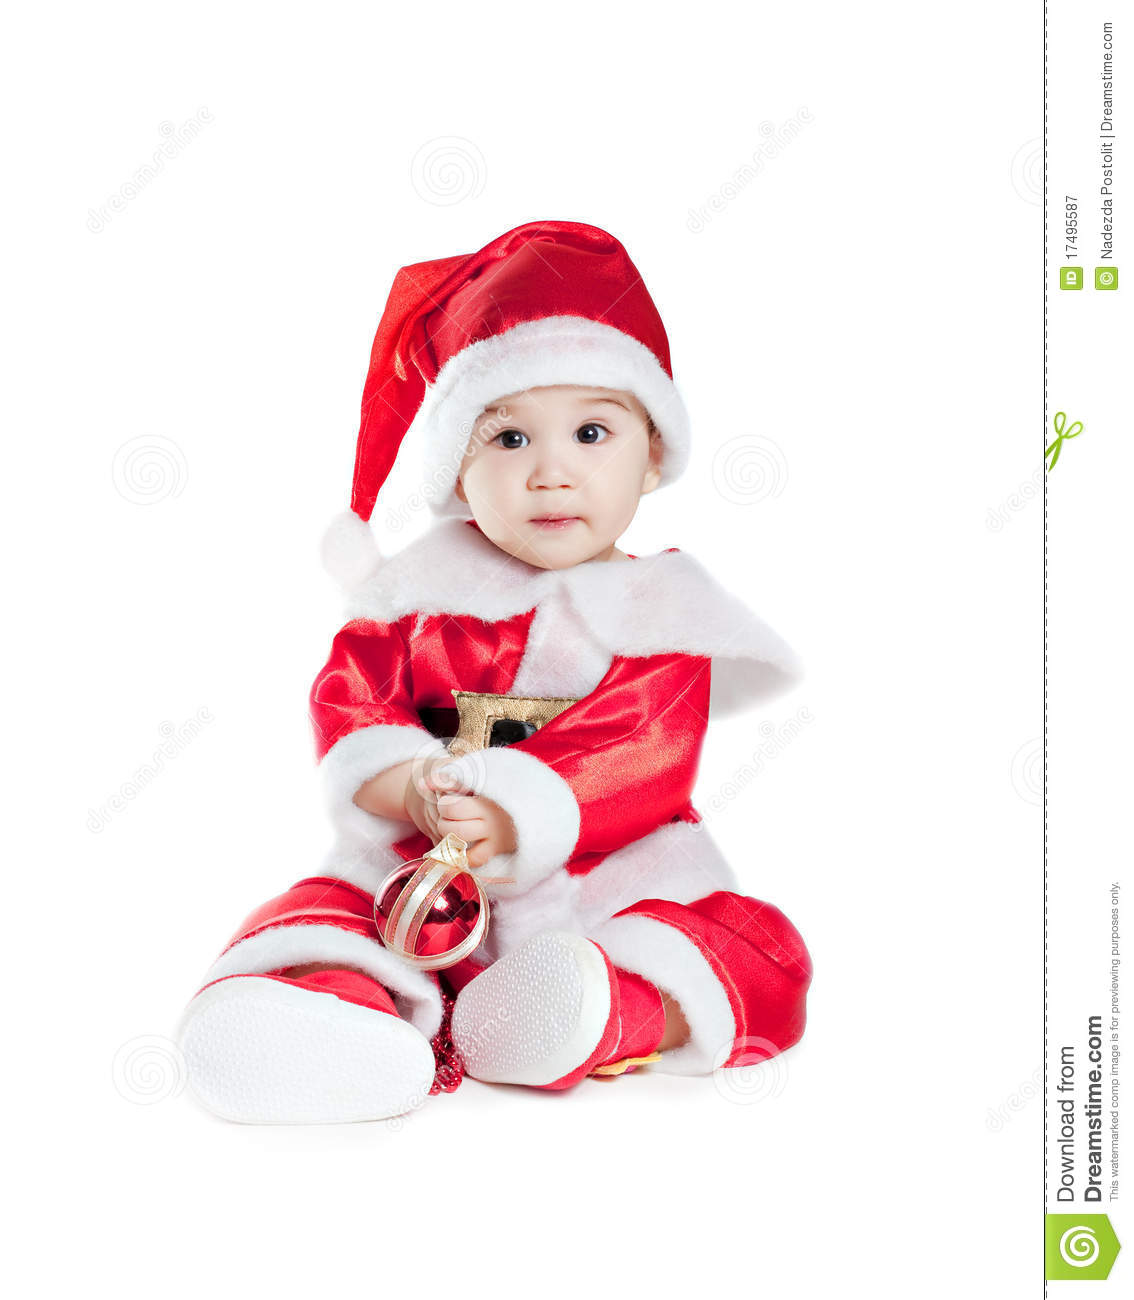 Christmas dress for baby - Fancy Christmas Dresses For Babies 35